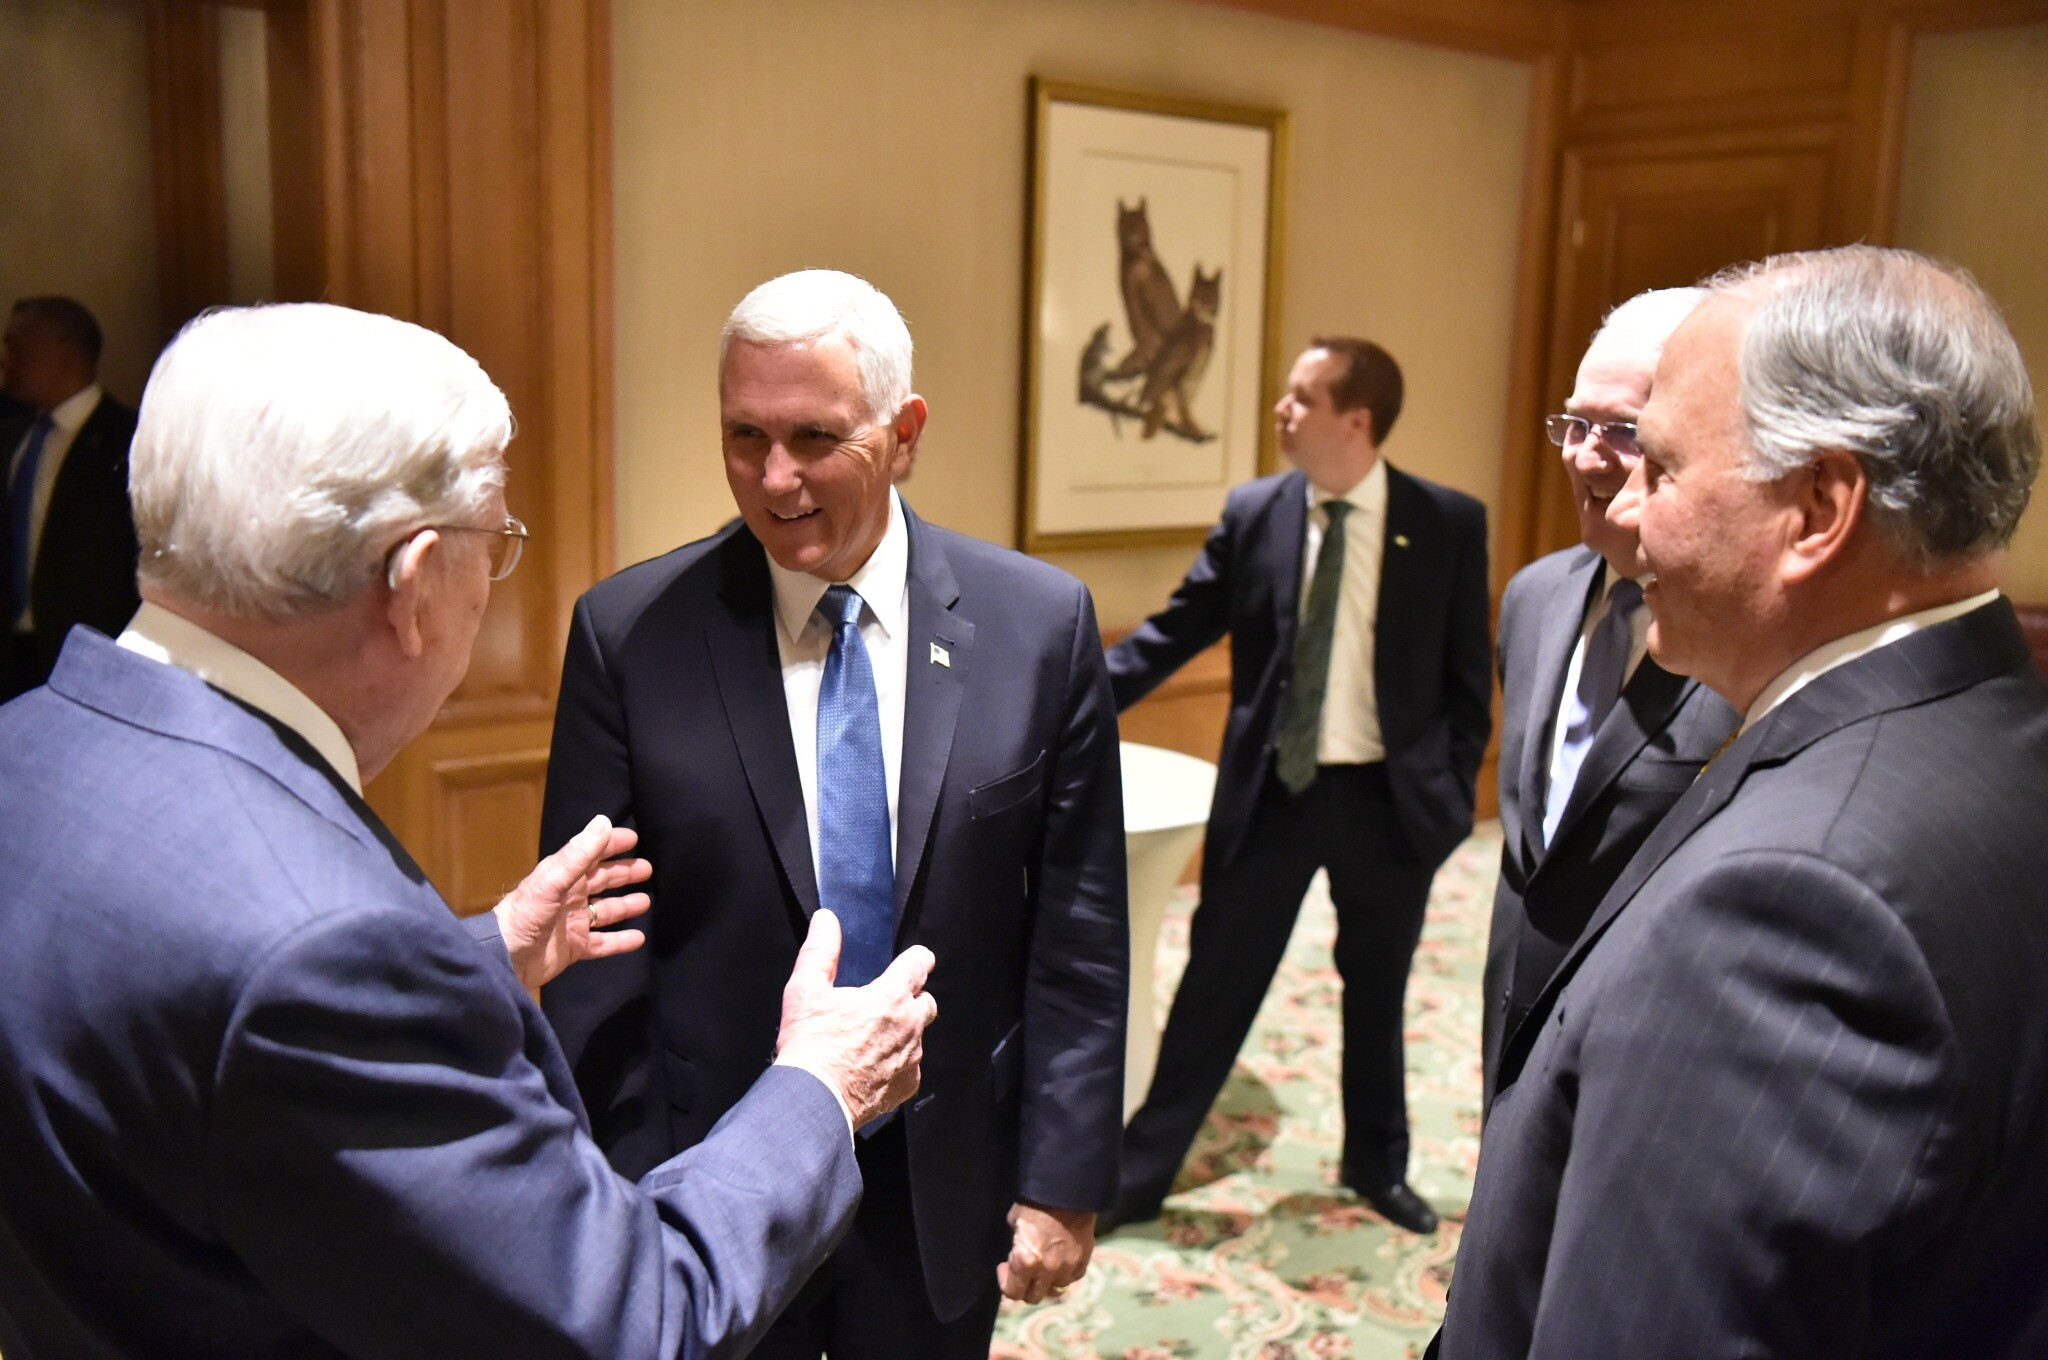 Photos: Pence meets with Latter-day Saint churchleaders